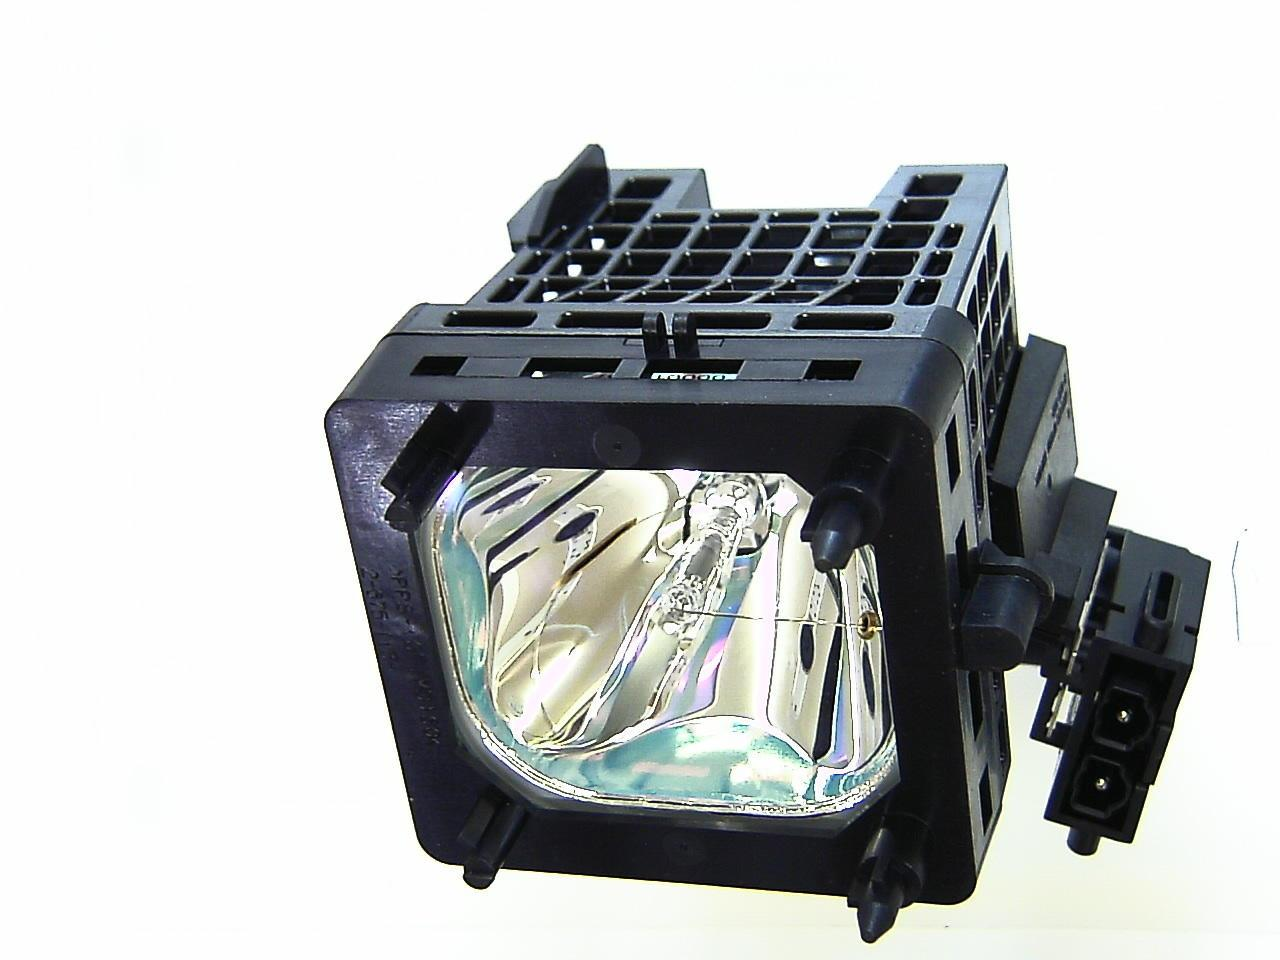 Sony Kds 50a2000 Genuine Original Rear Projection Tv Lamp